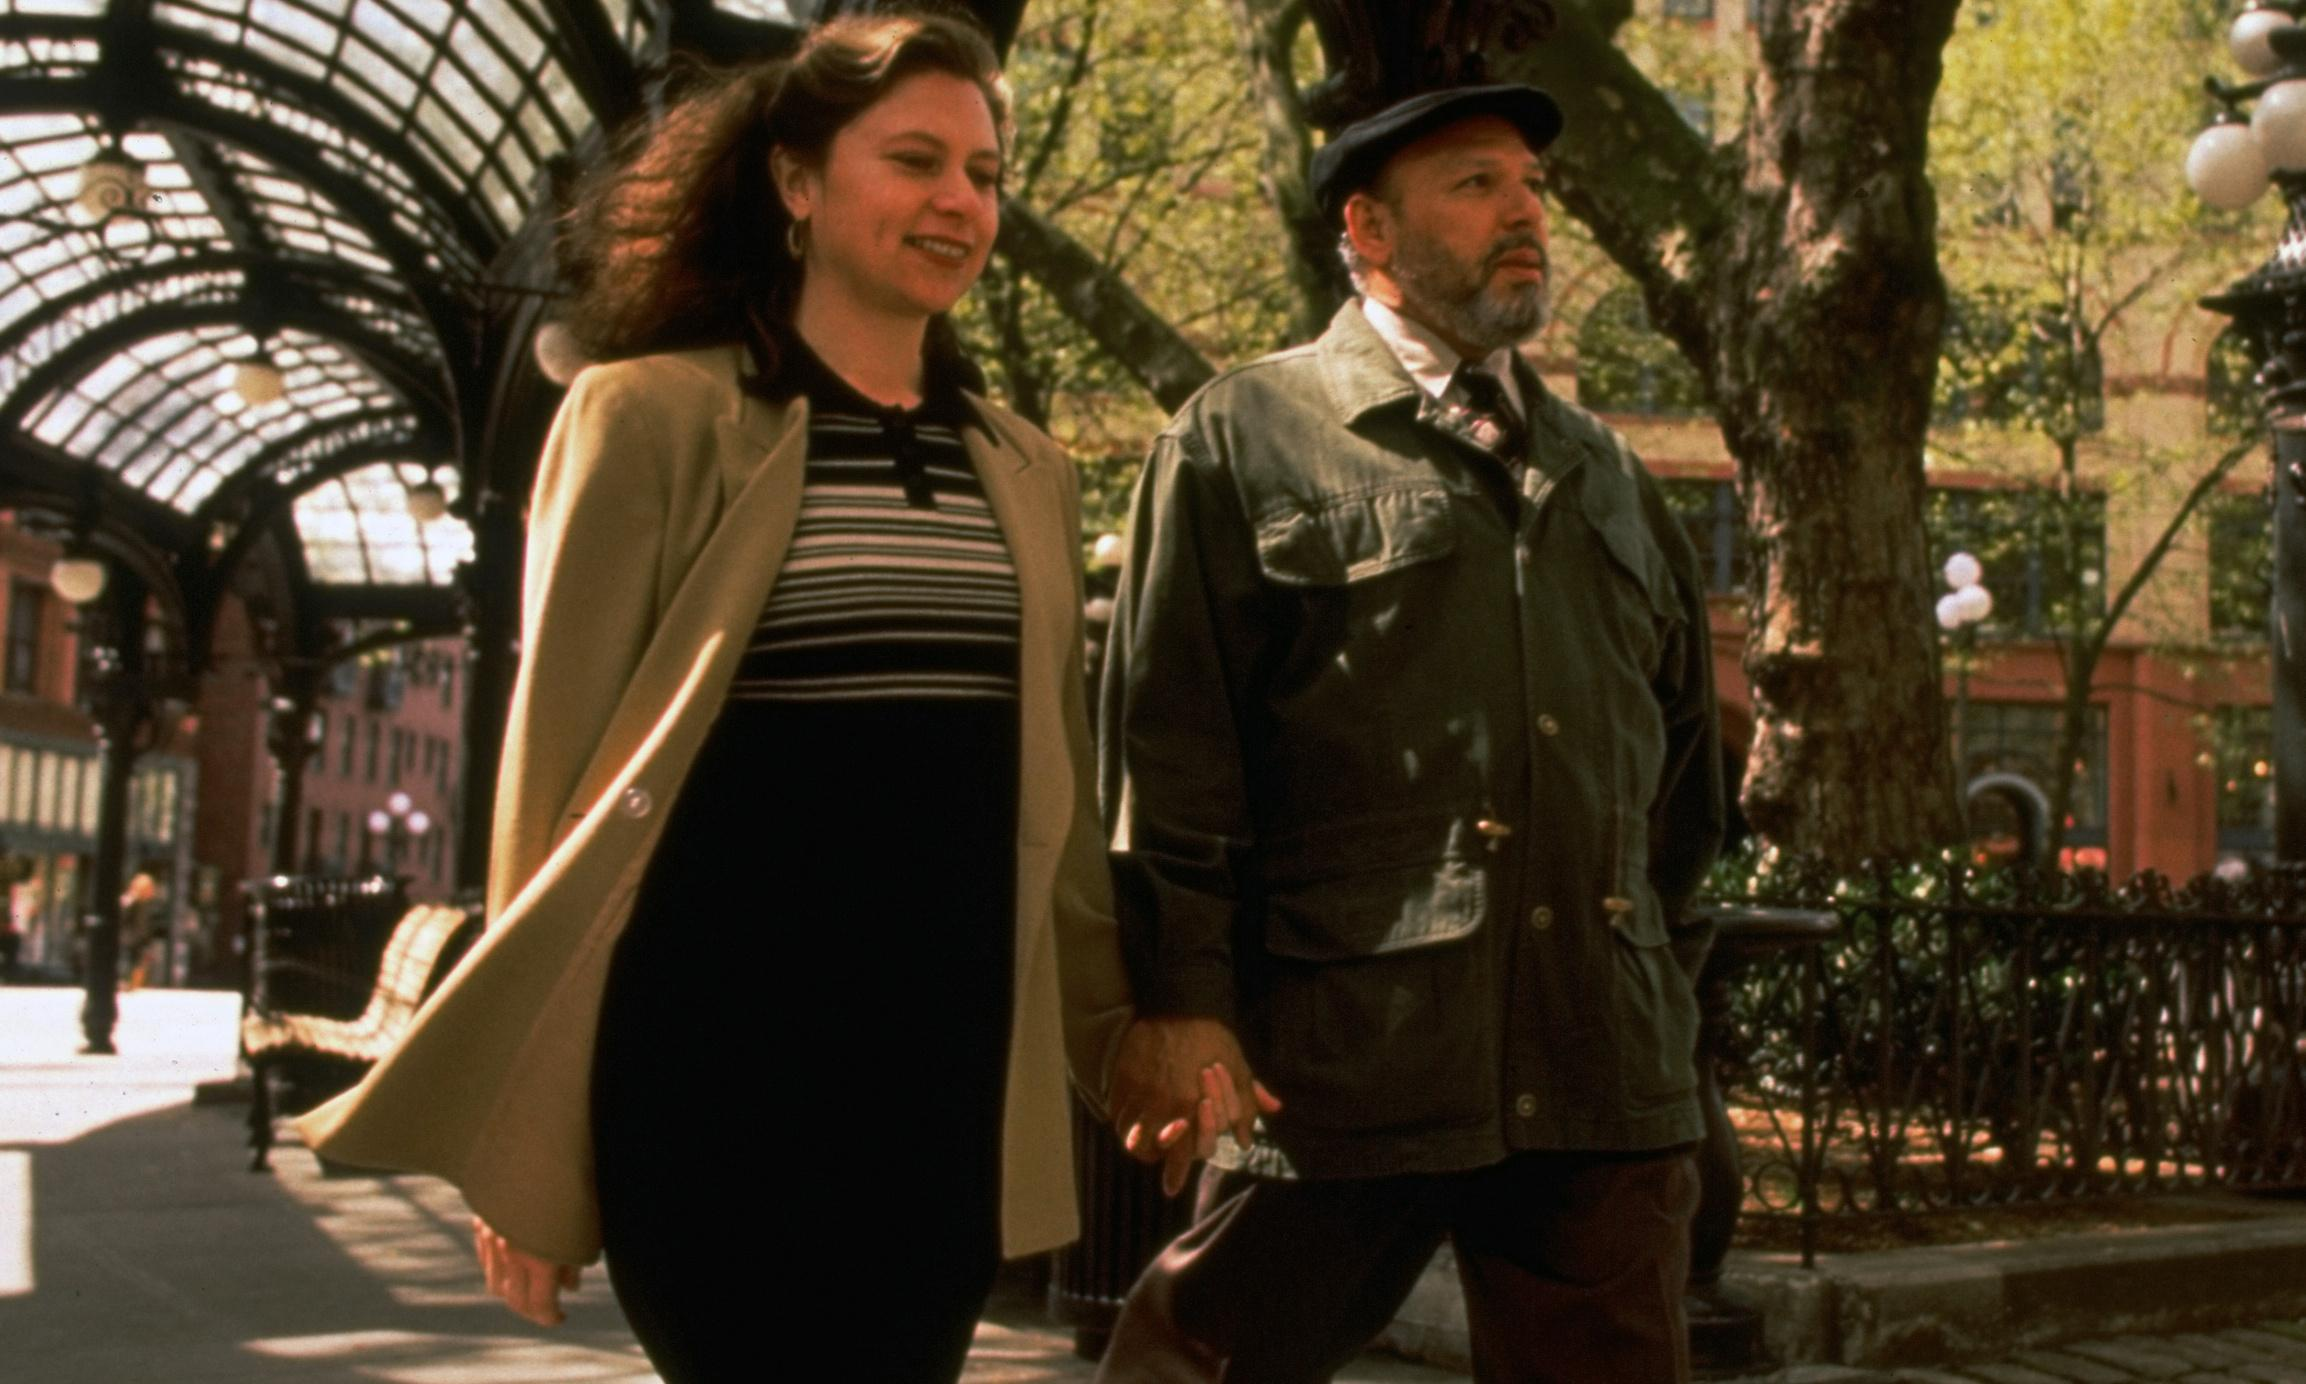 Pittsburgh state of mind: how August Wilson's flame burns on